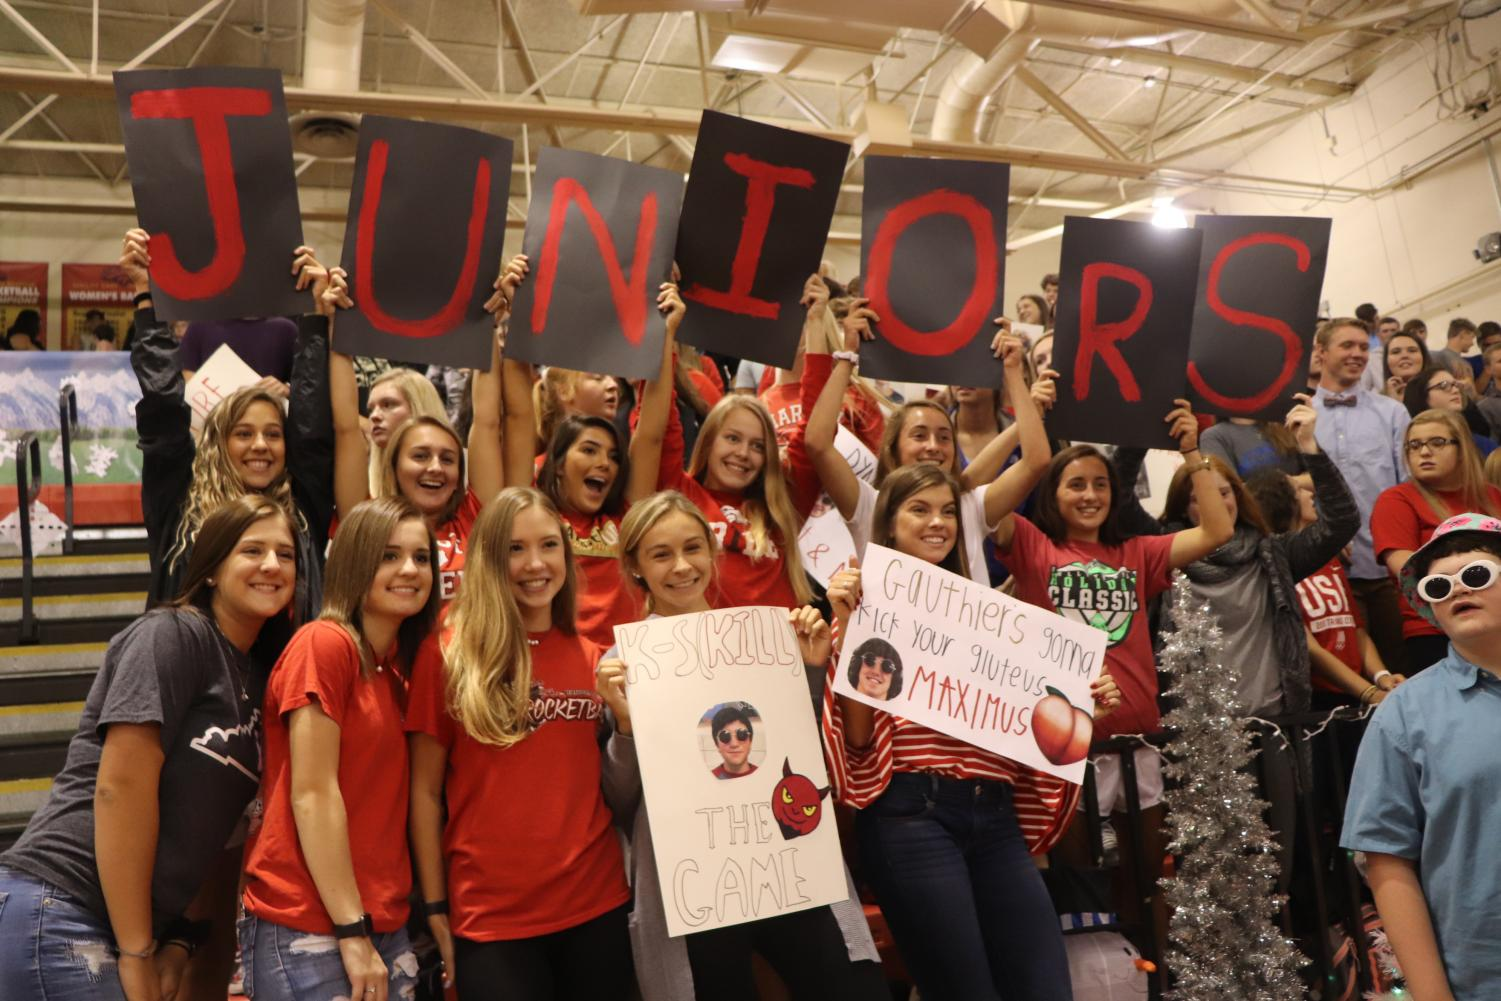 Juniors cheer on the rocketball players with several posters.